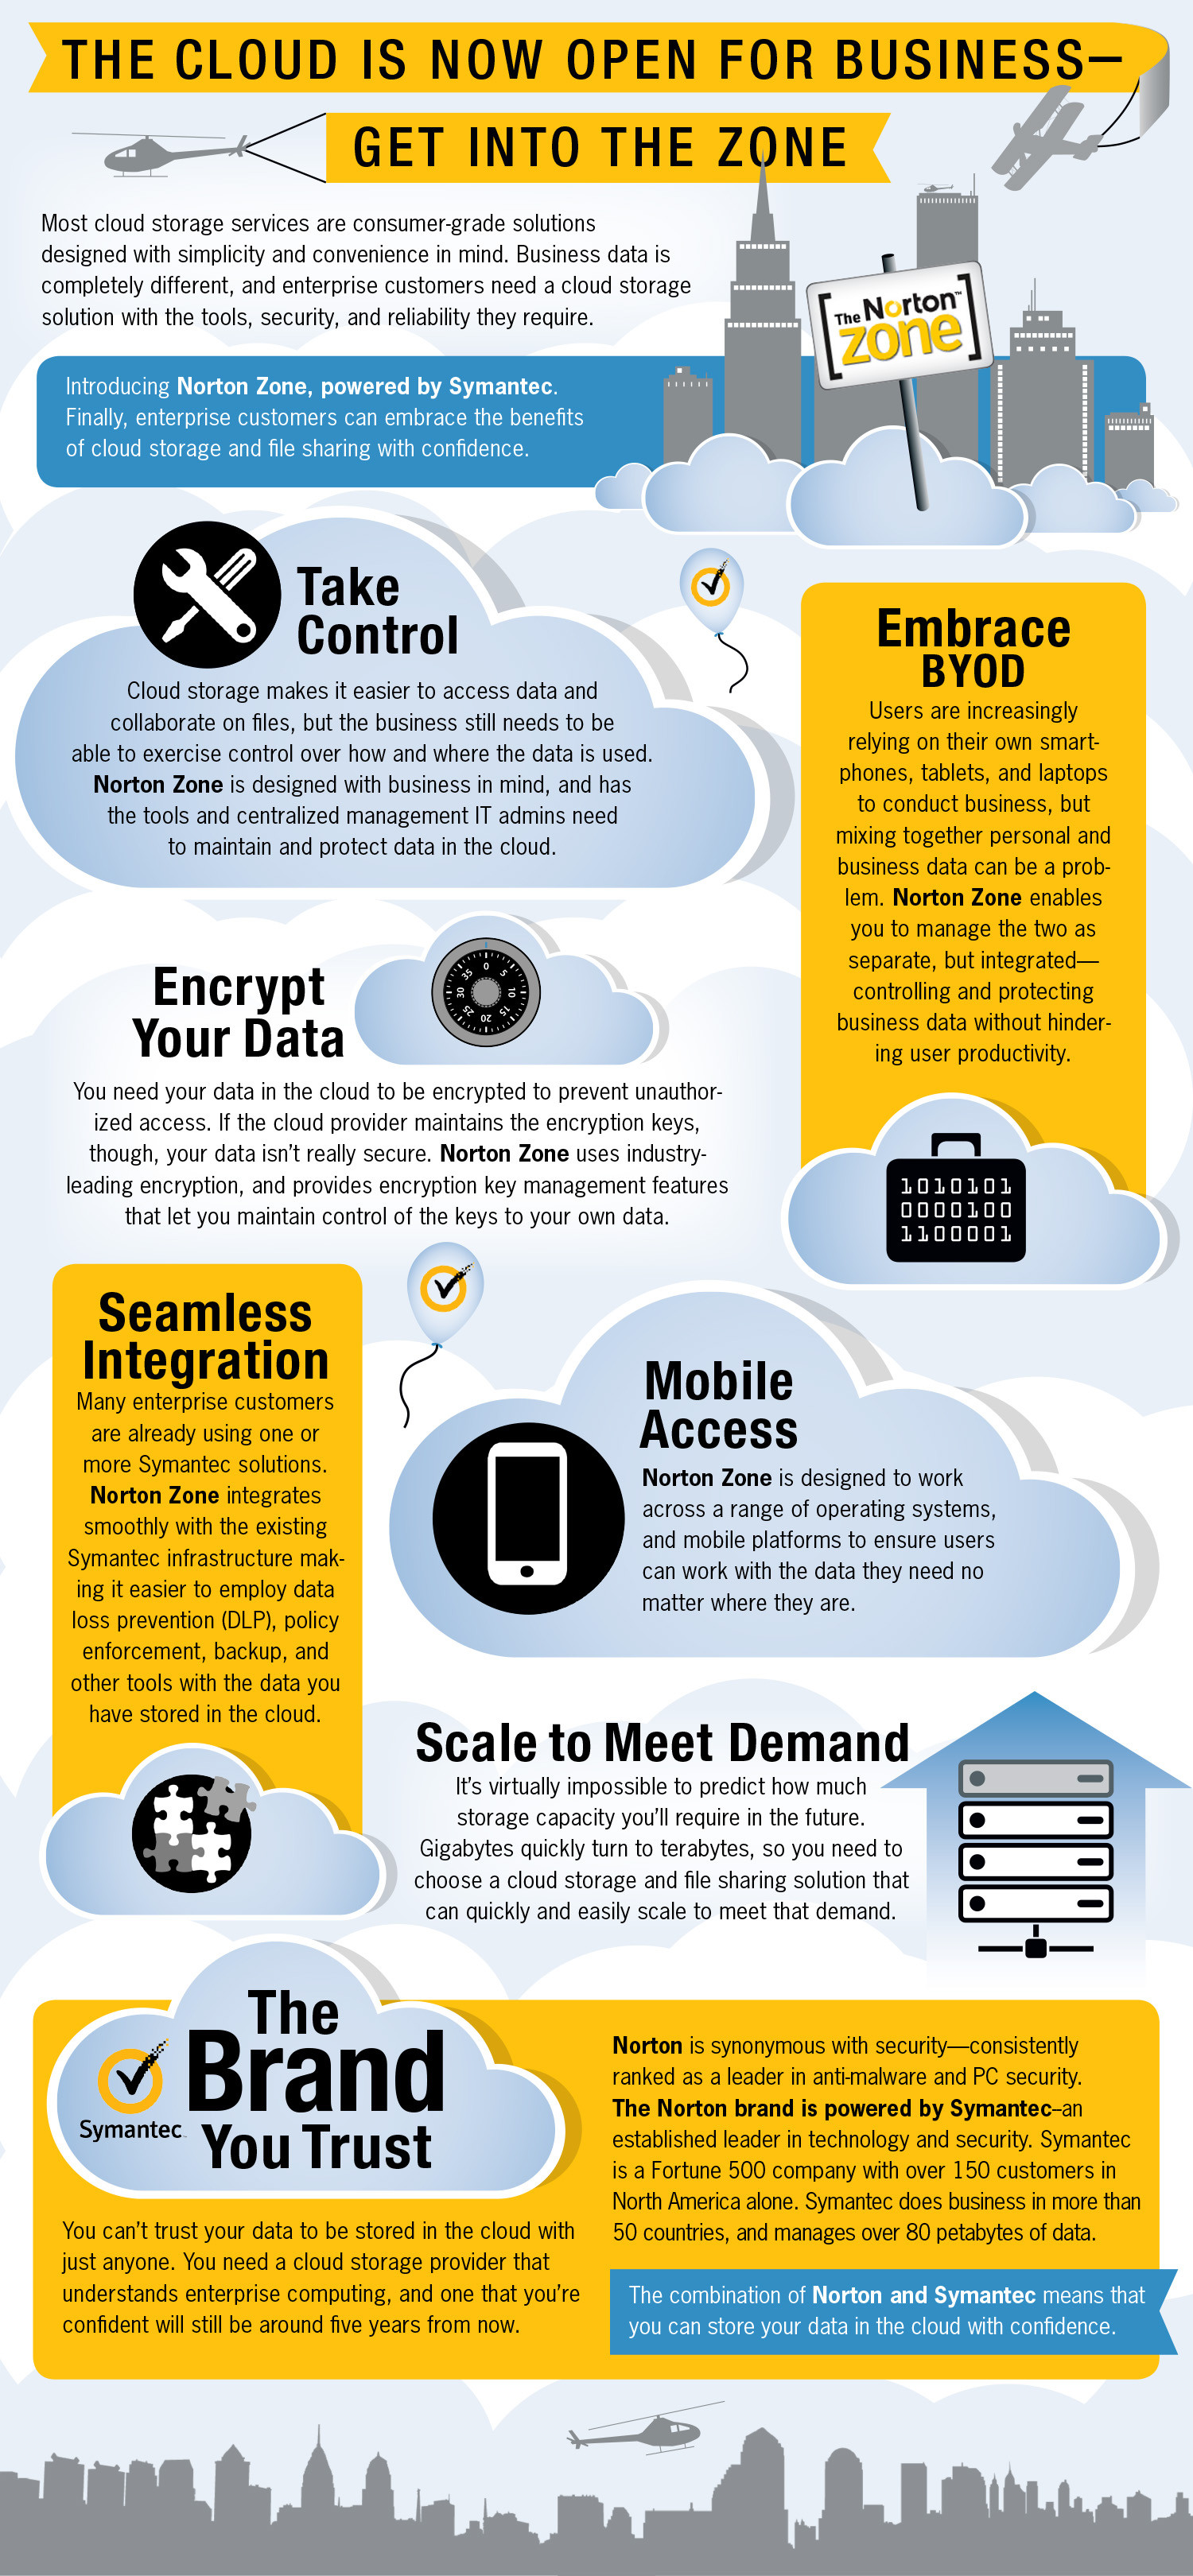 The Cloud is Now Open for Business—Get Into The Zone Infographic